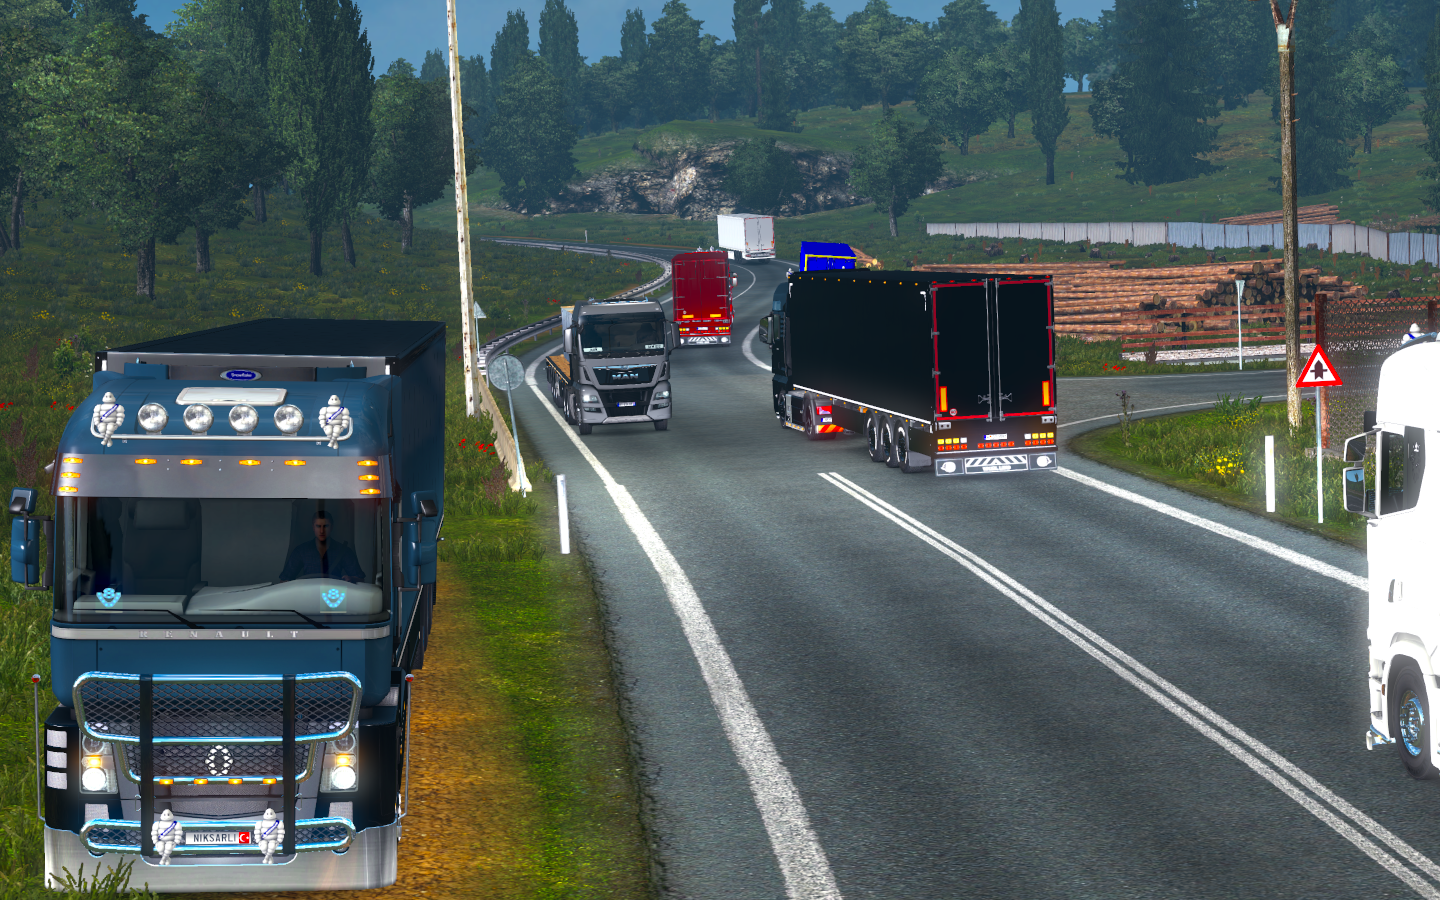 ets2_20190515_174907_00.png